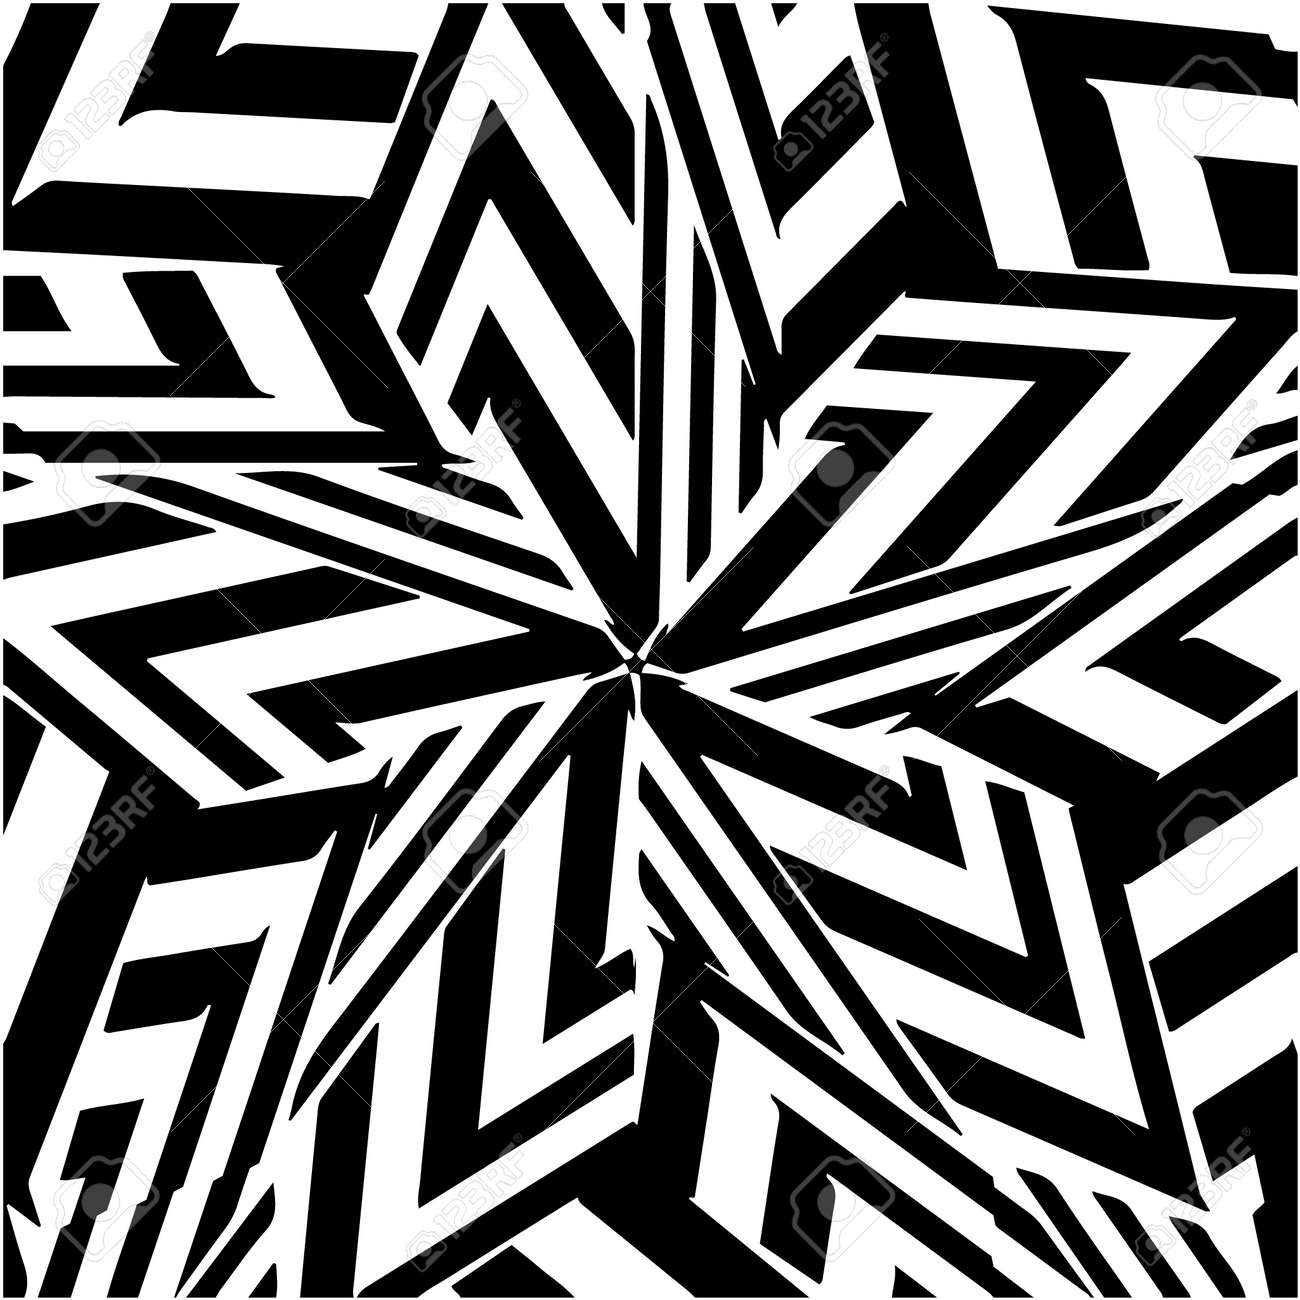 striped background. Geometric vector pattern with triangular elements. abstract ornament for wallpapers and backgrounds. Black and white colors. - 169624750